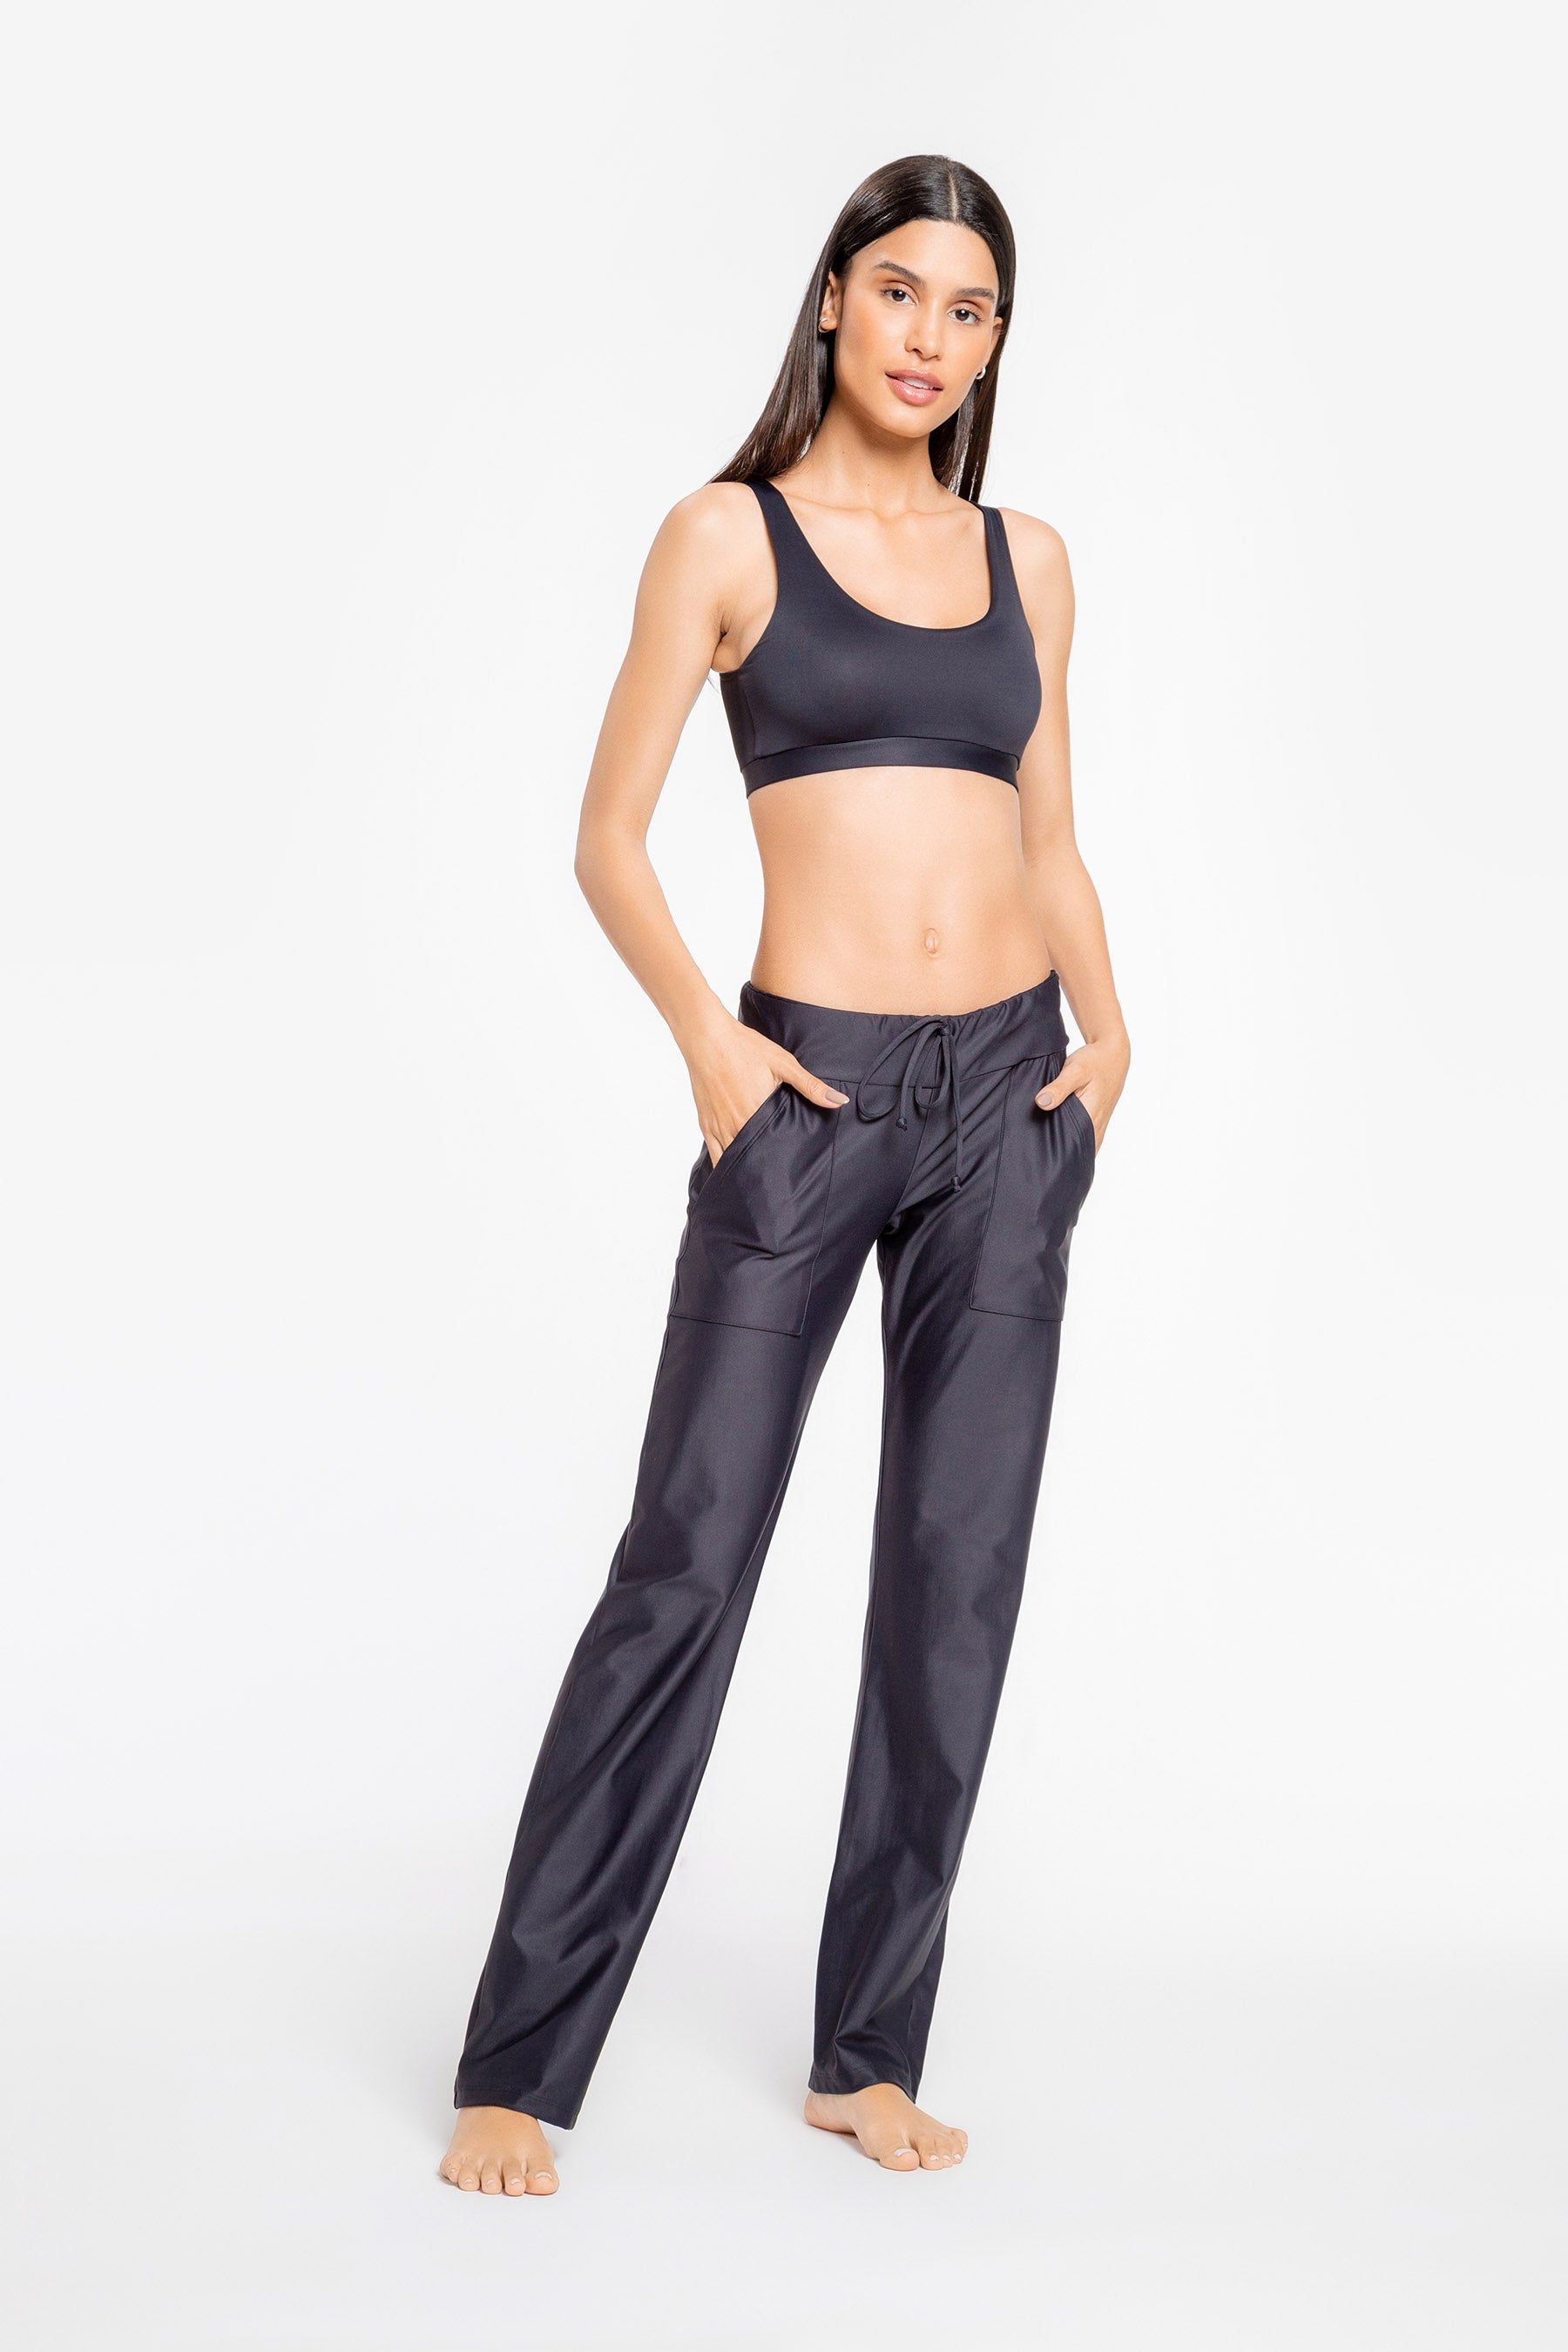 Essential Wellness Pants 2